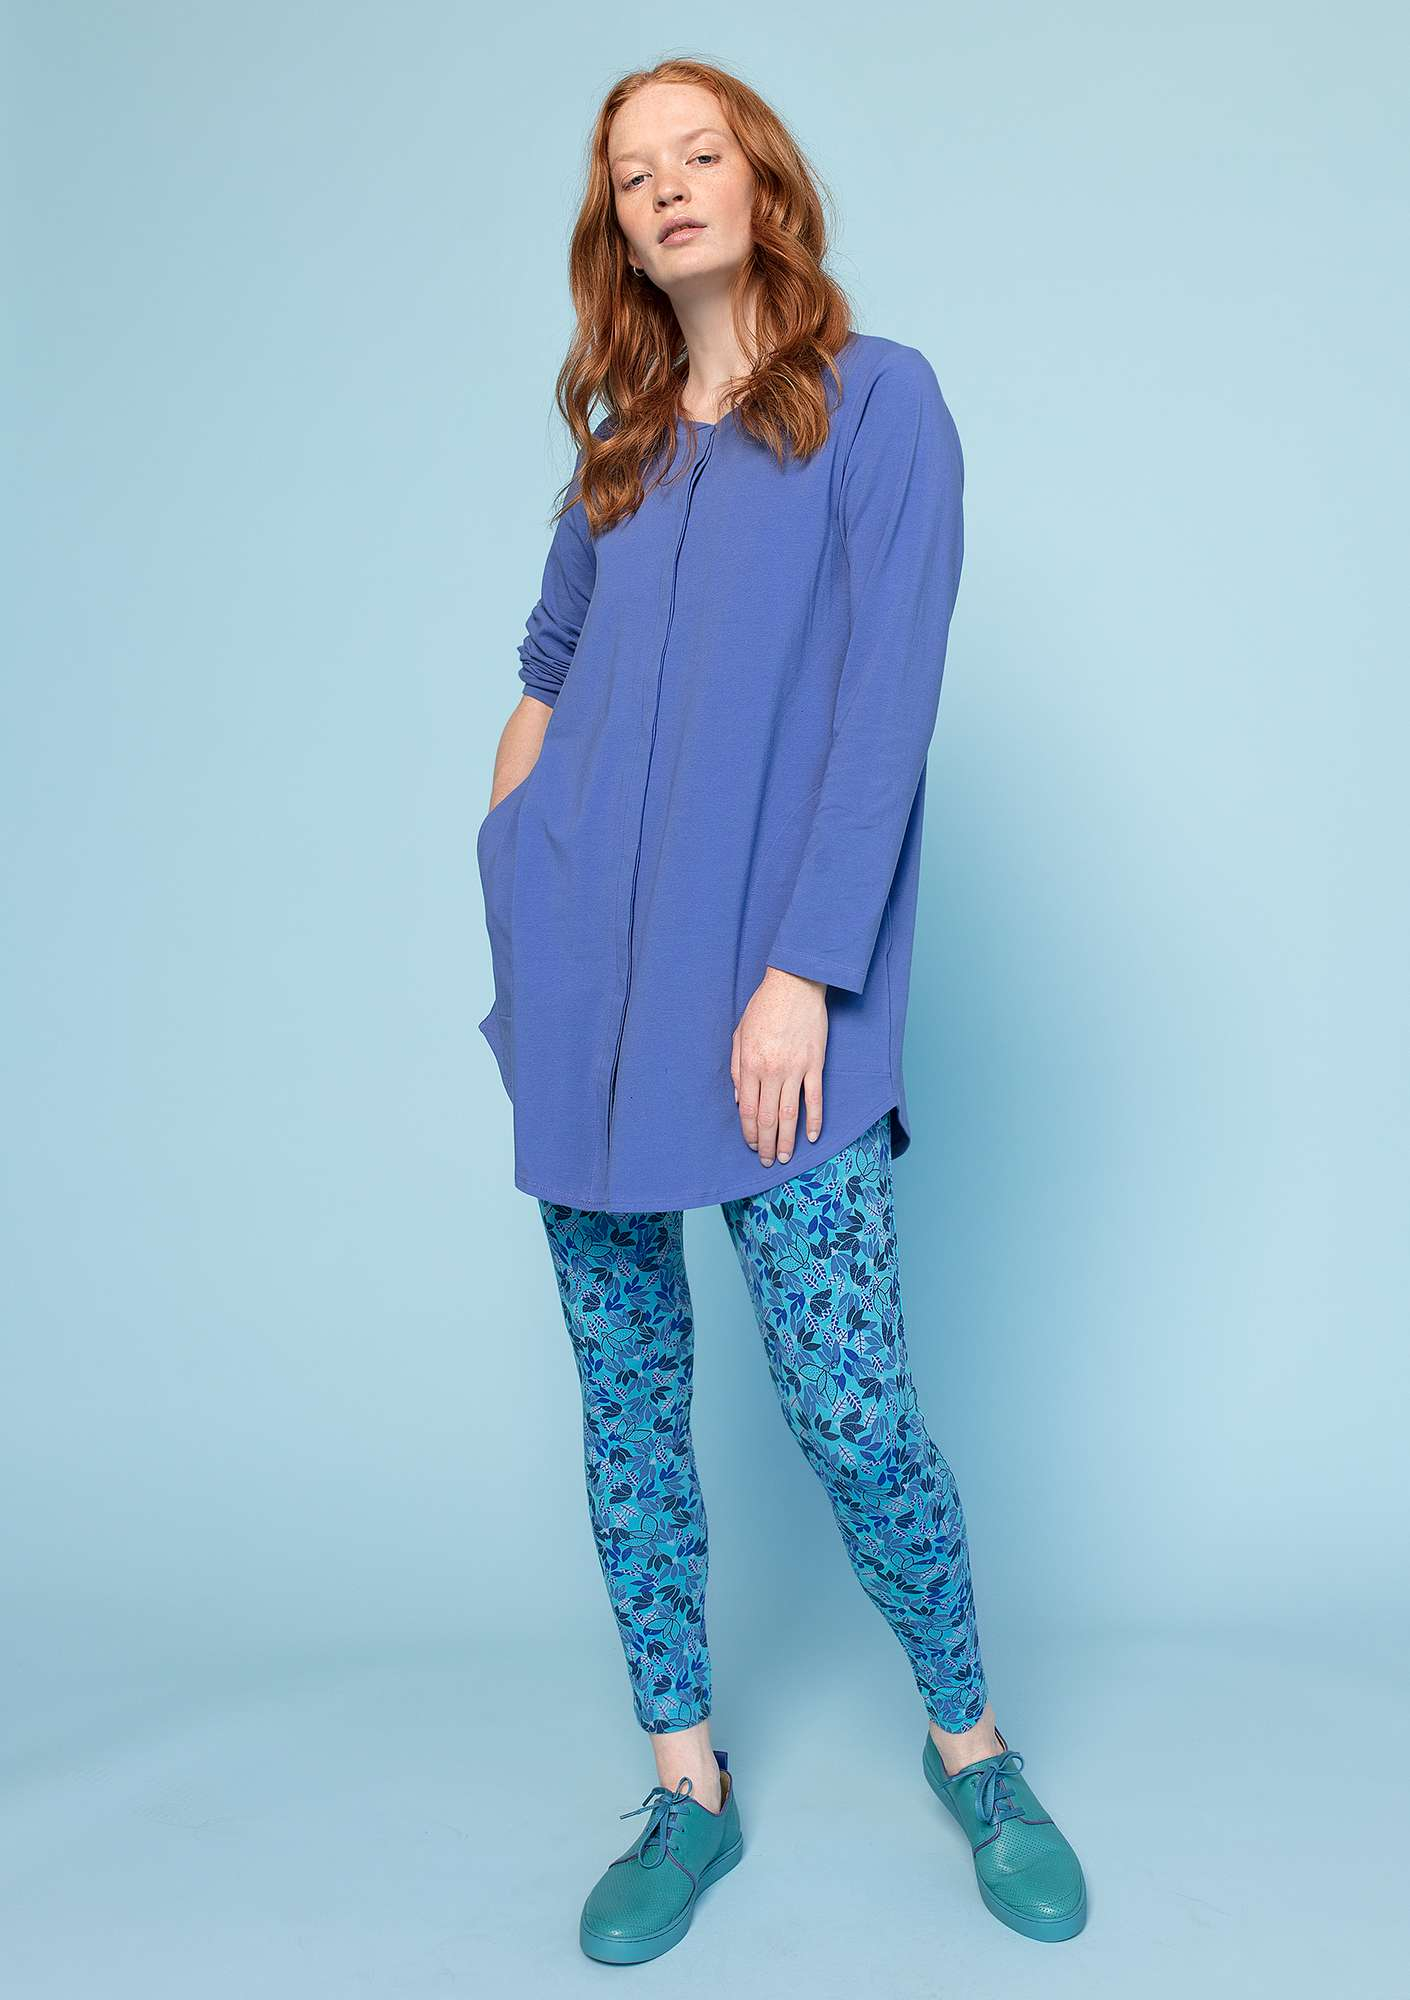 """Minerva"" leggings in organic cotton/elastane turquoise/patterned"